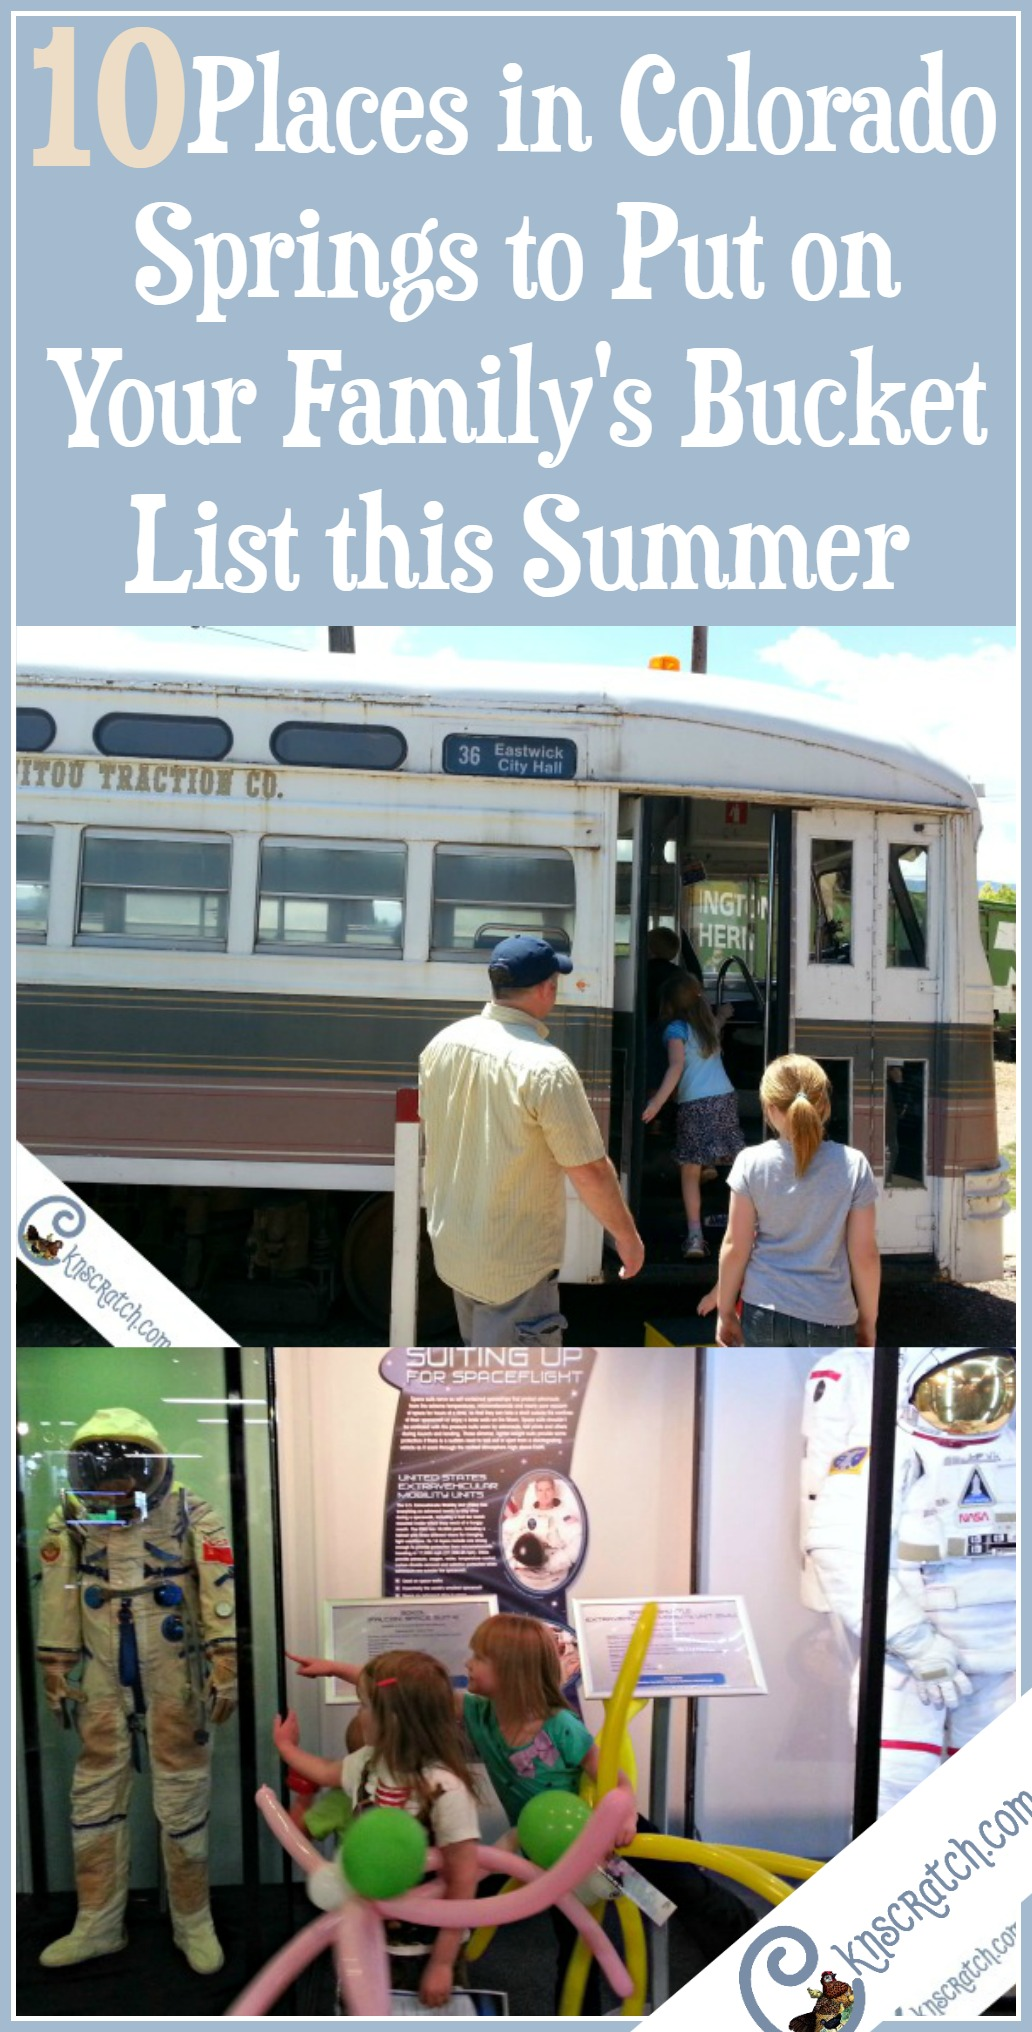 Oh this is great- 10 places to put your bucket list this summer in Colorado Springs. I didn't know about a couple of these.